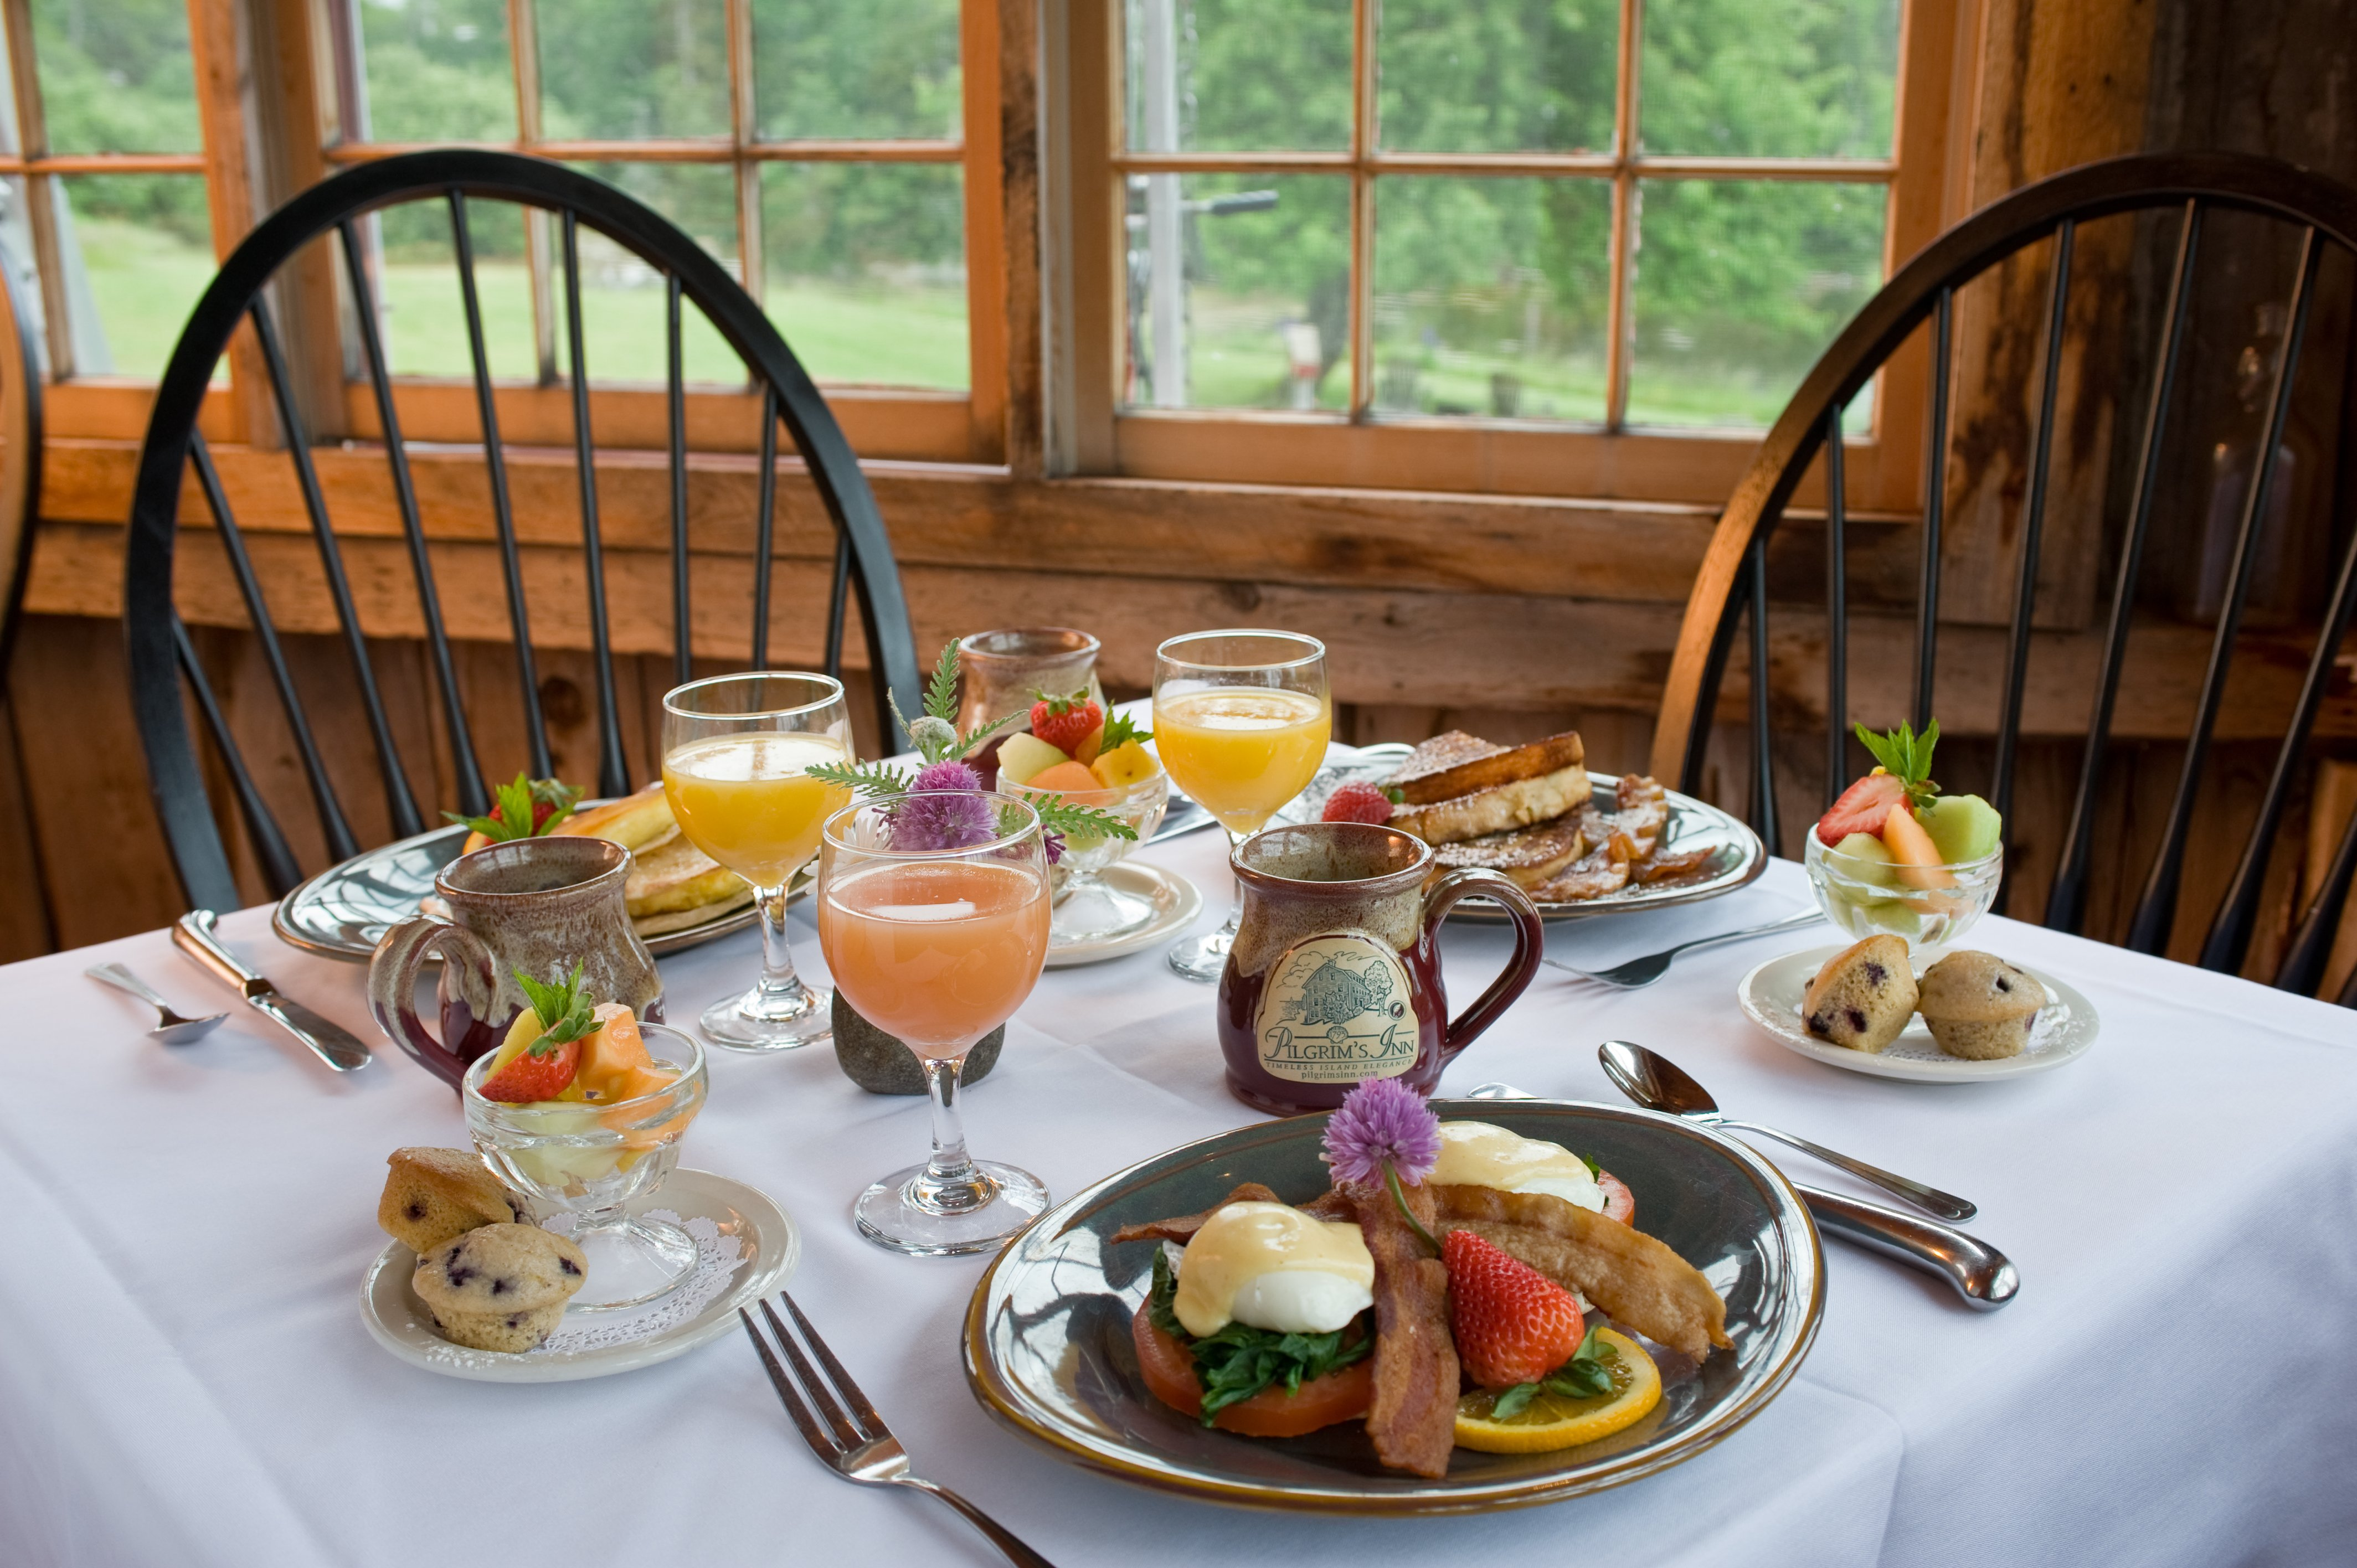 A delicious breakfast is served every morning at the Inn and is complimentary